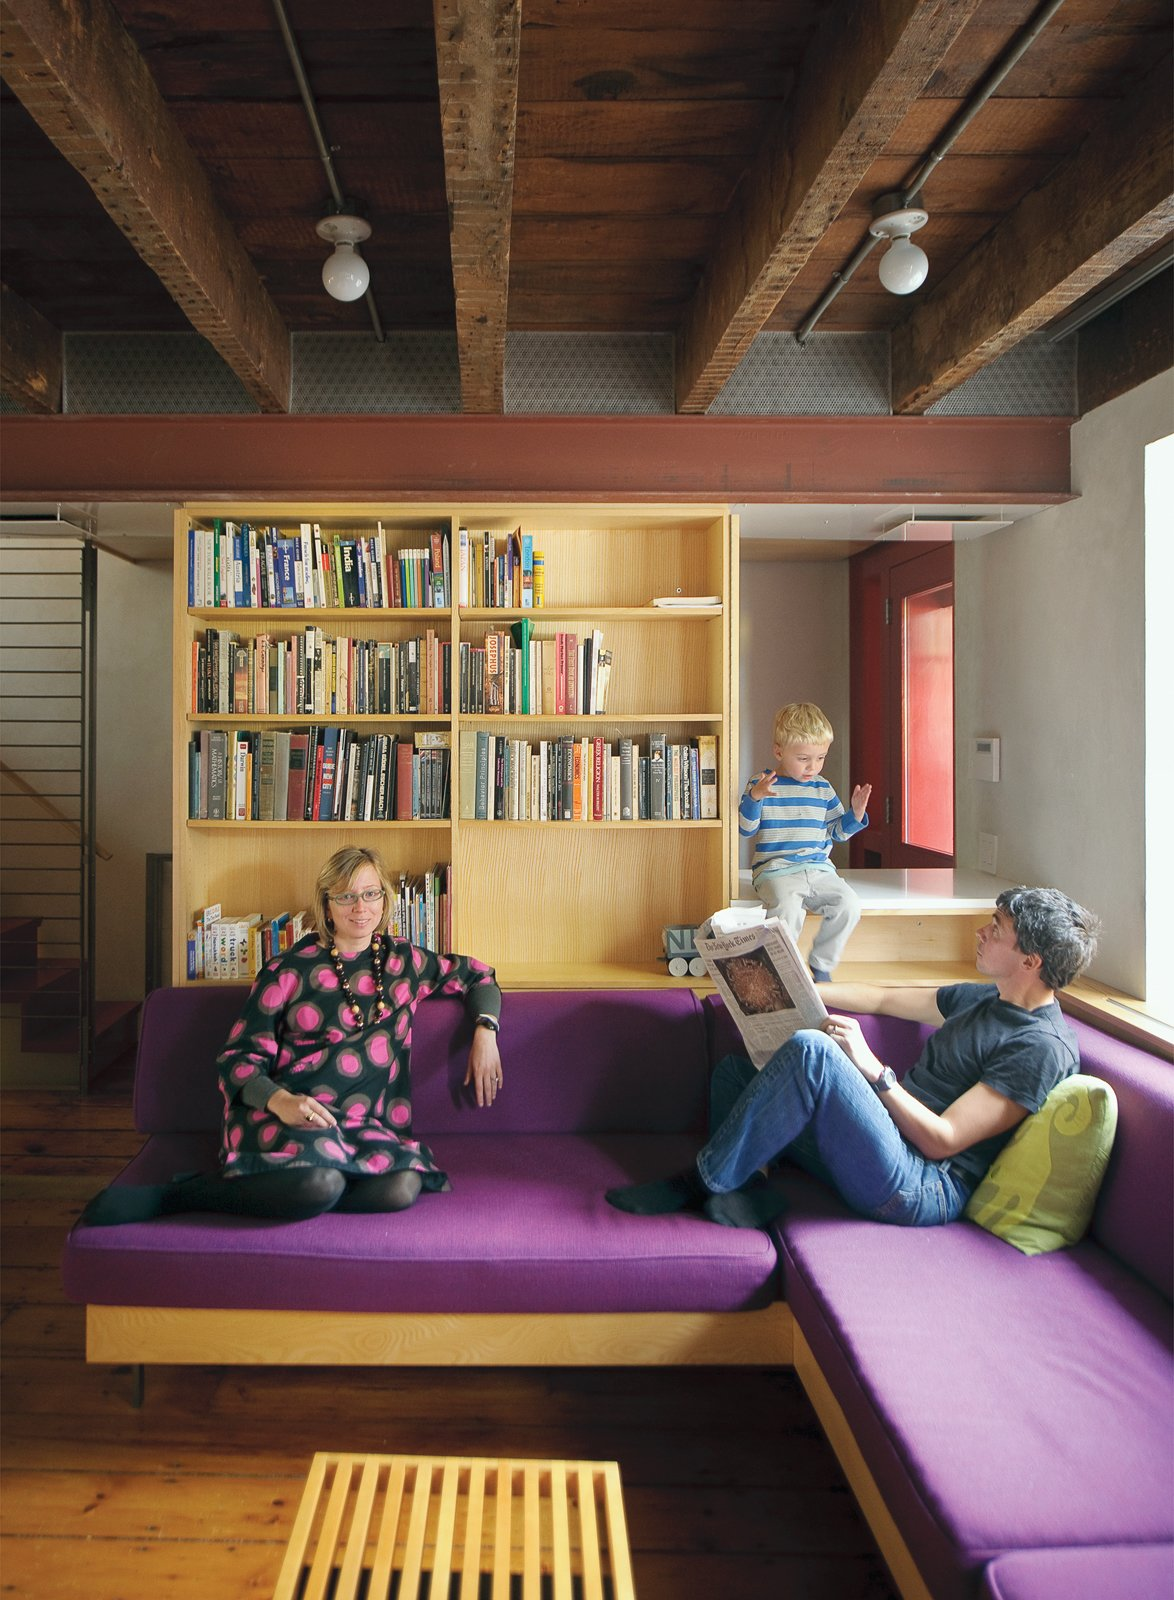 Articles about family home renovation brooklyn on Dwell.com